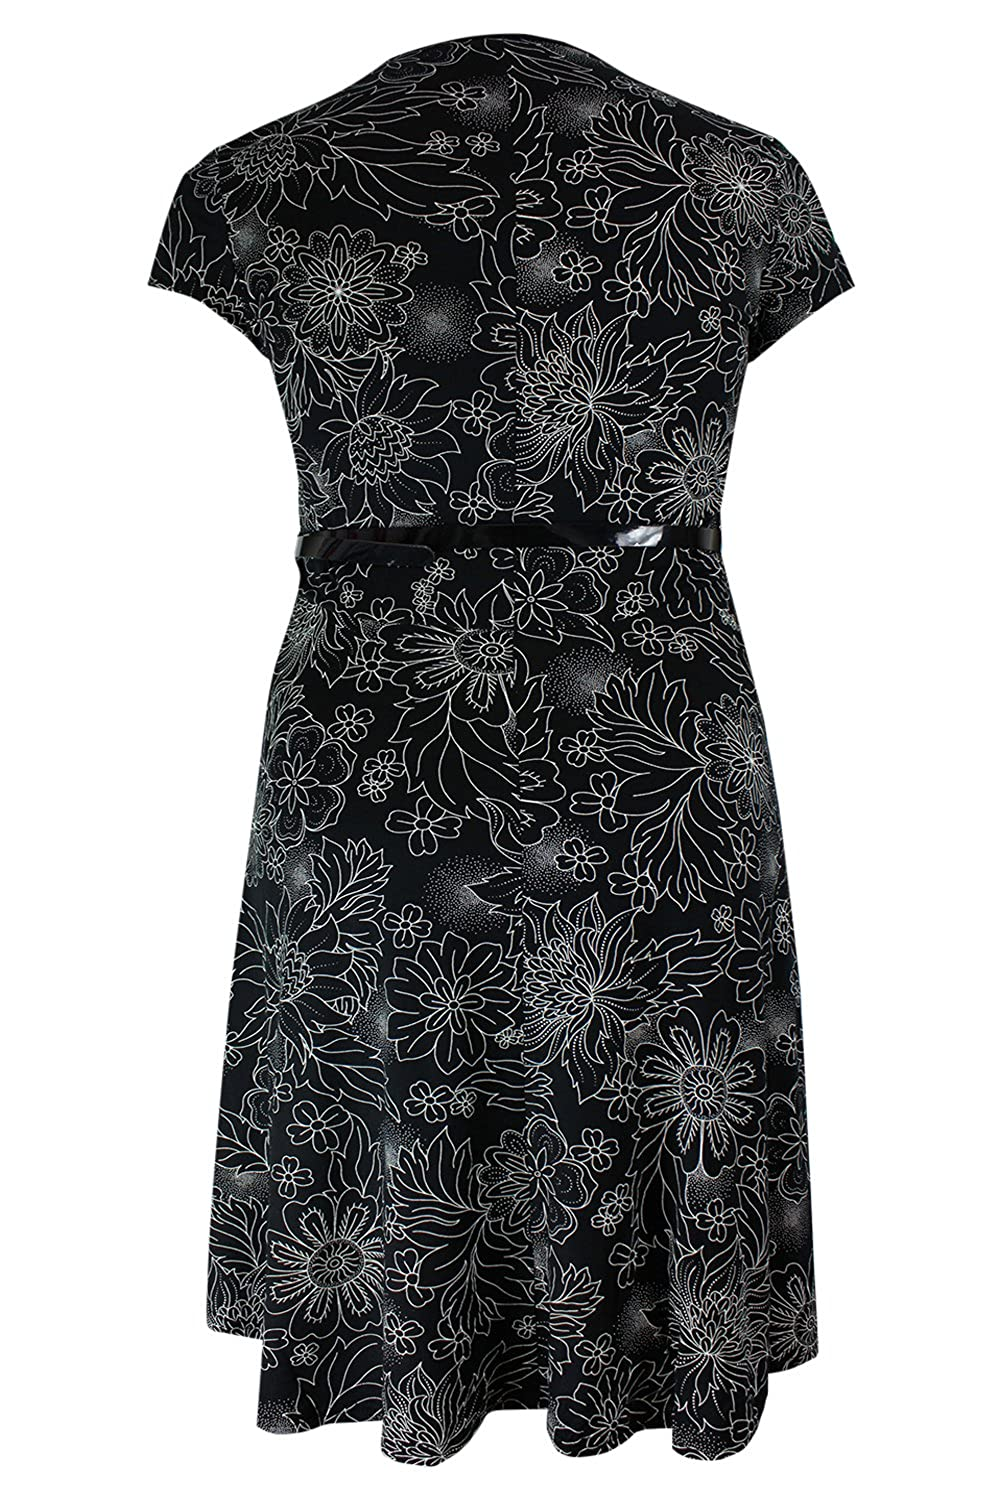 dfcb42c011 Ladies Plus Size Black Cream Floral Print Skater Dress   Belt   Amazon.co.uk  Clothing